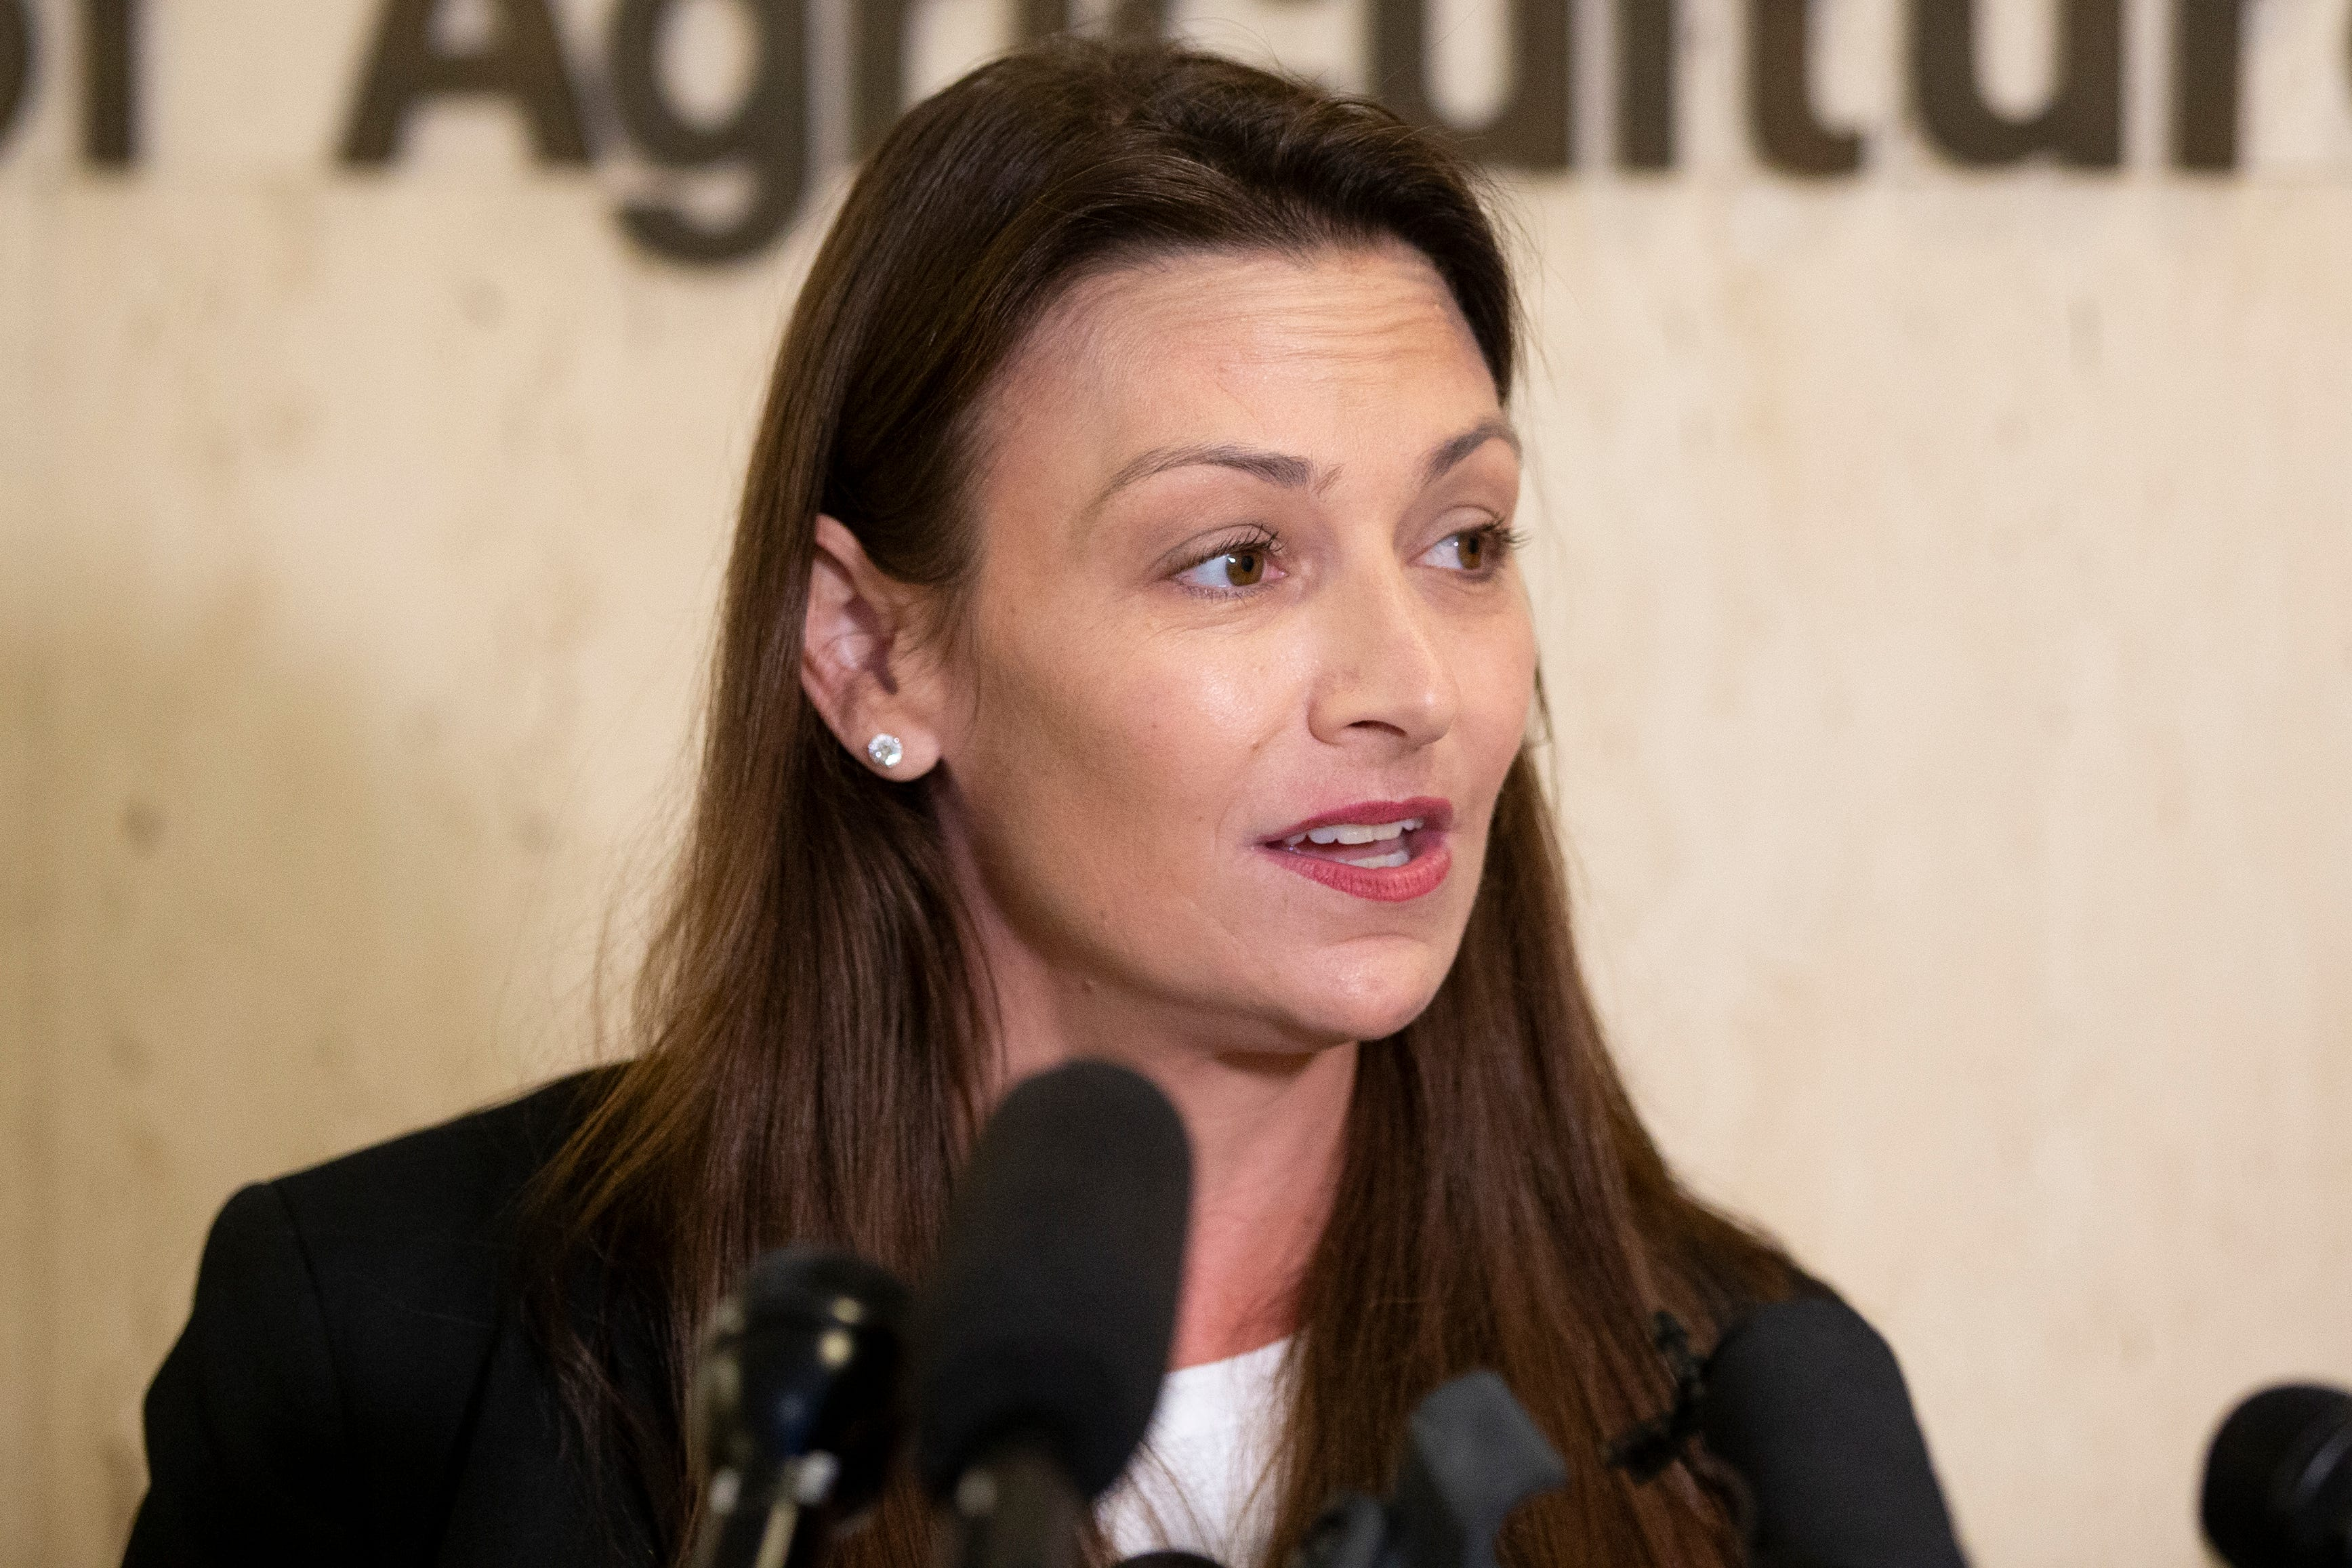 Florida Agriculture Commissioner Nikki Fried expected to announce campaign for governor 3